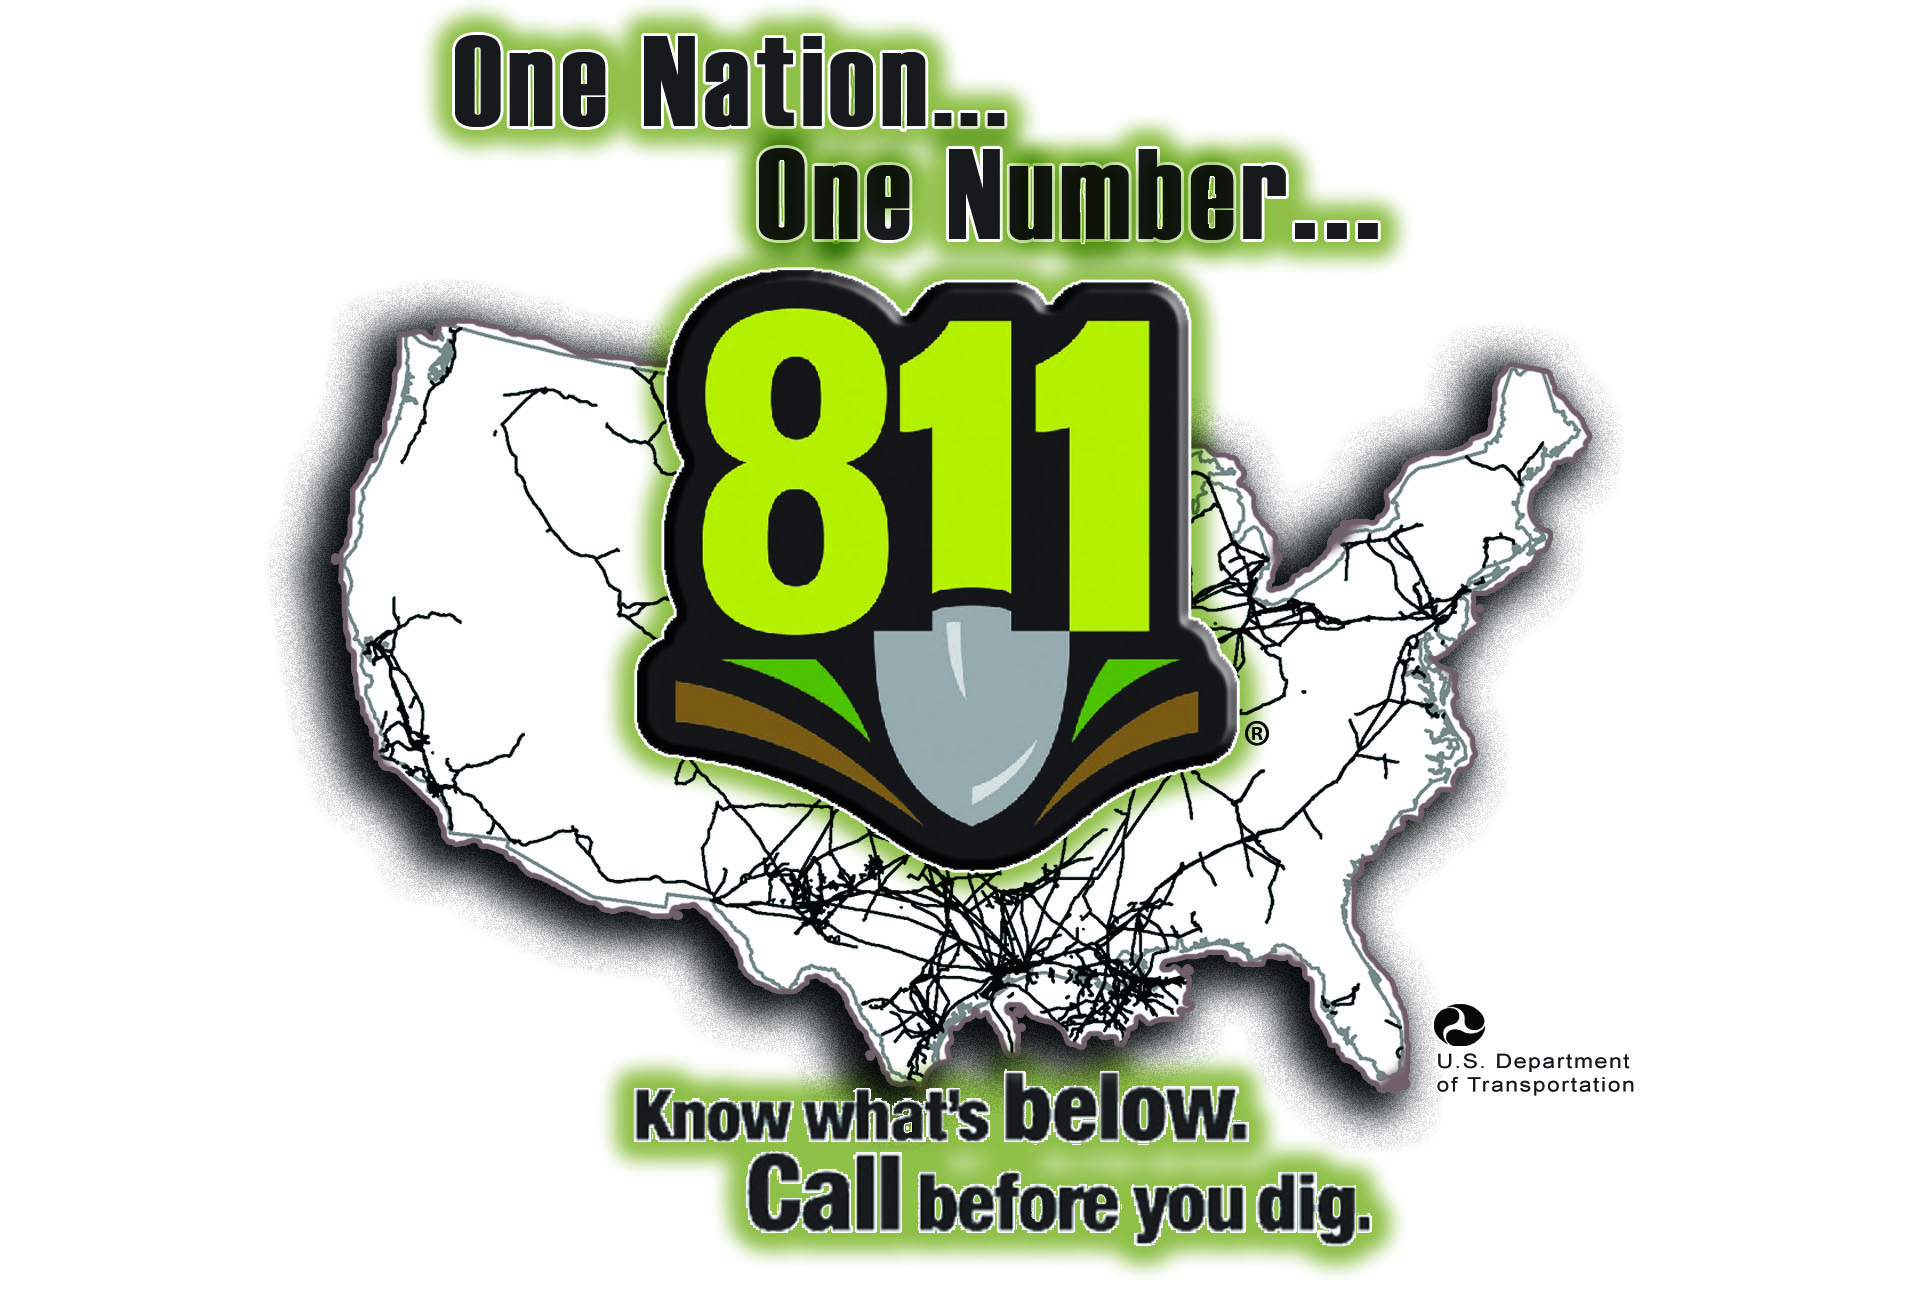 Phmsa Pipeline And Hazardous Materials Safety Administration Xpress Boat Wiring Diagram 811 Day Call Before You Dig